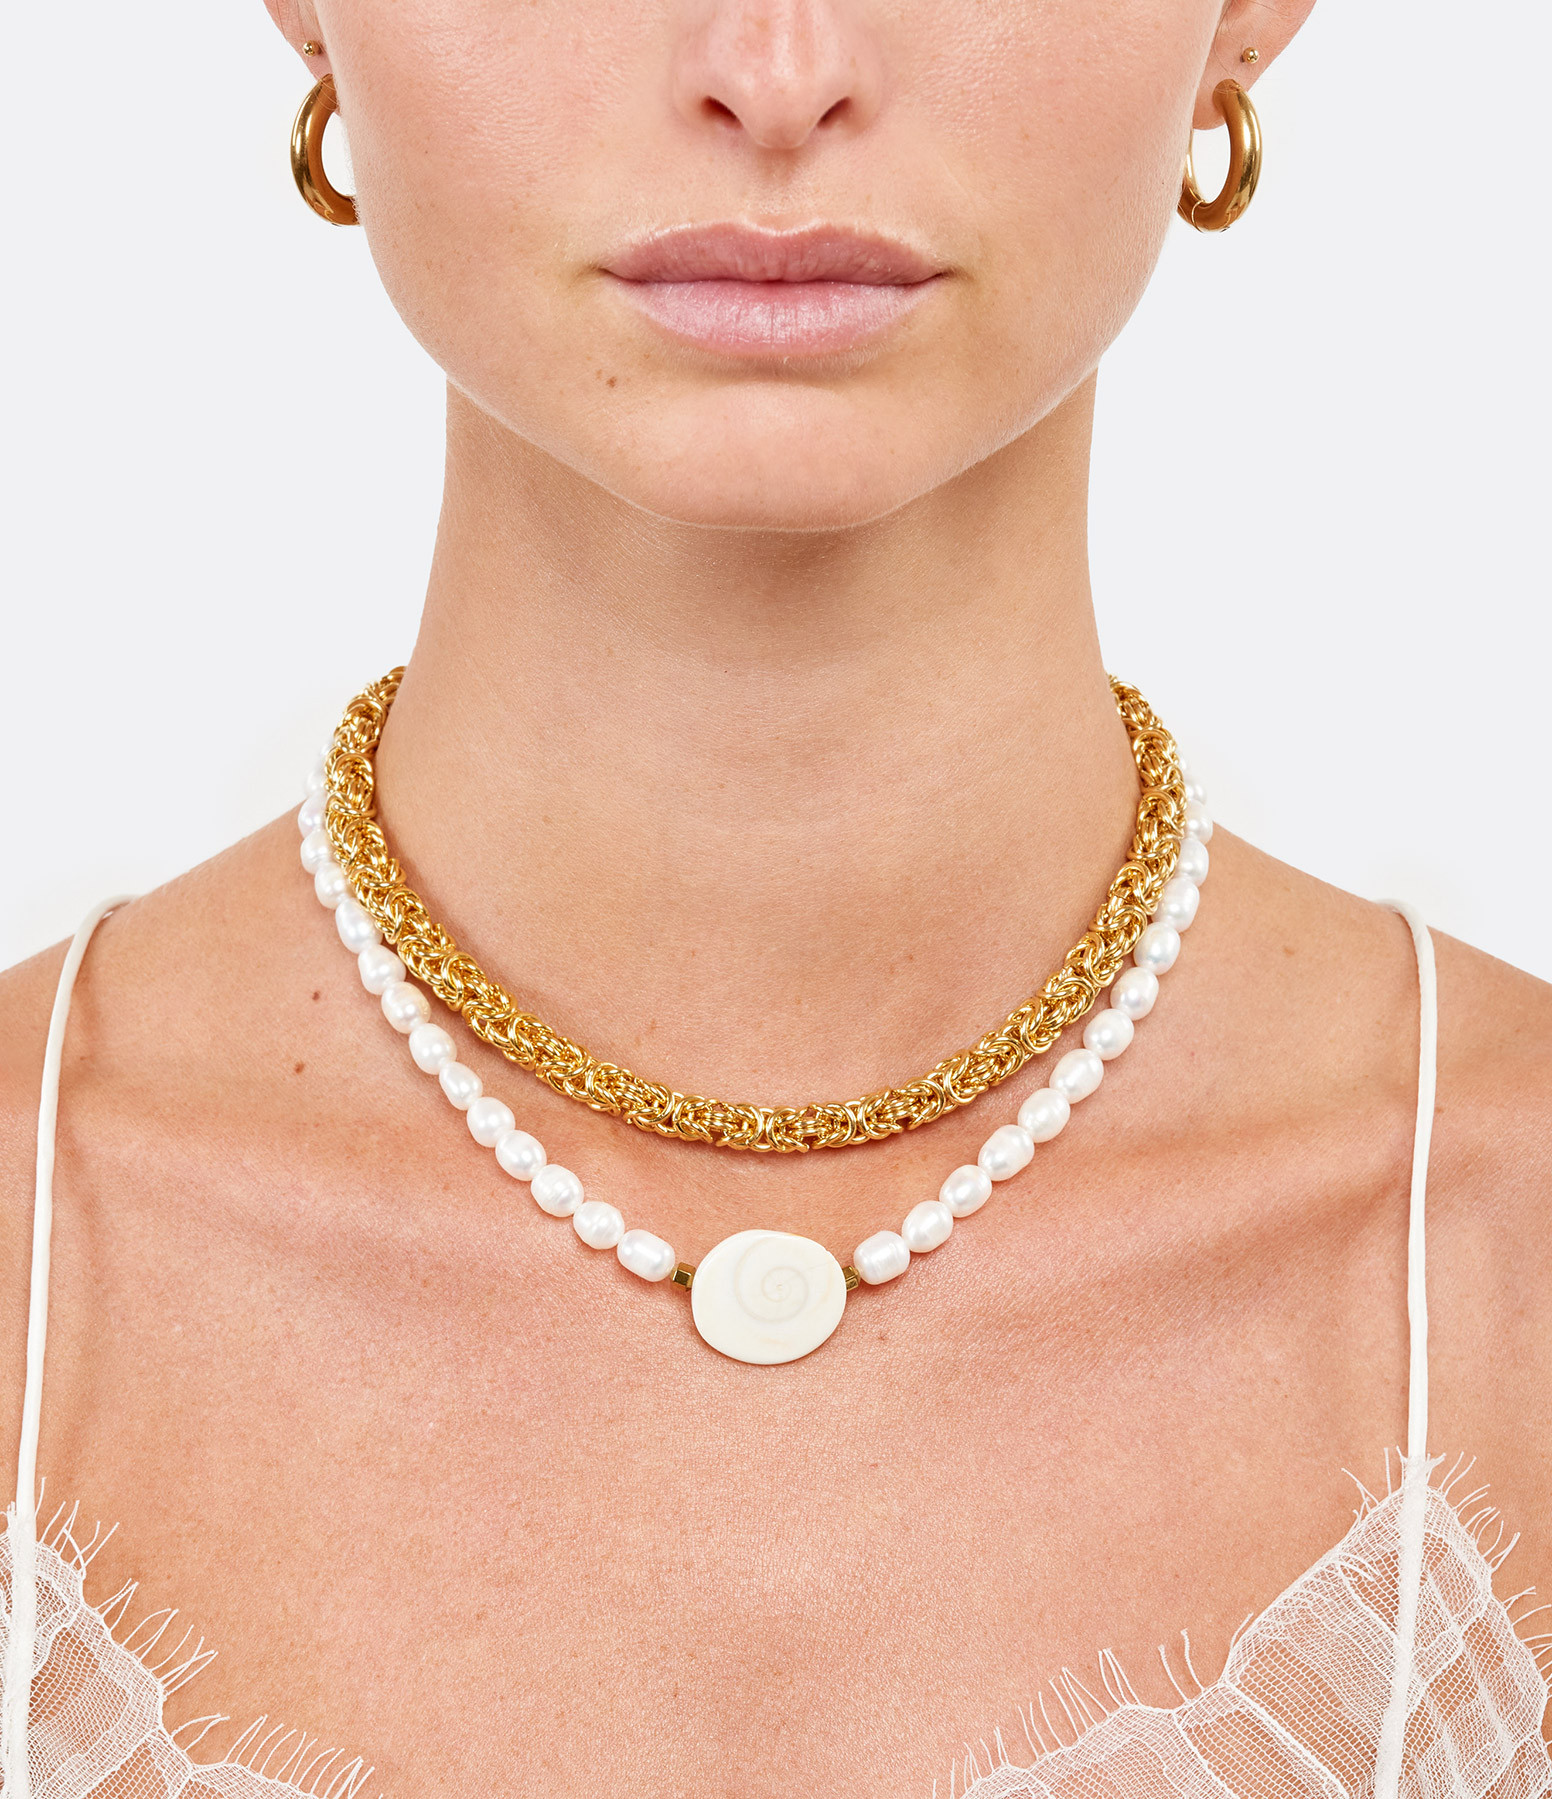 SHAKER JEWELS - Collier Trat Perles Coquillages Plaqué Or